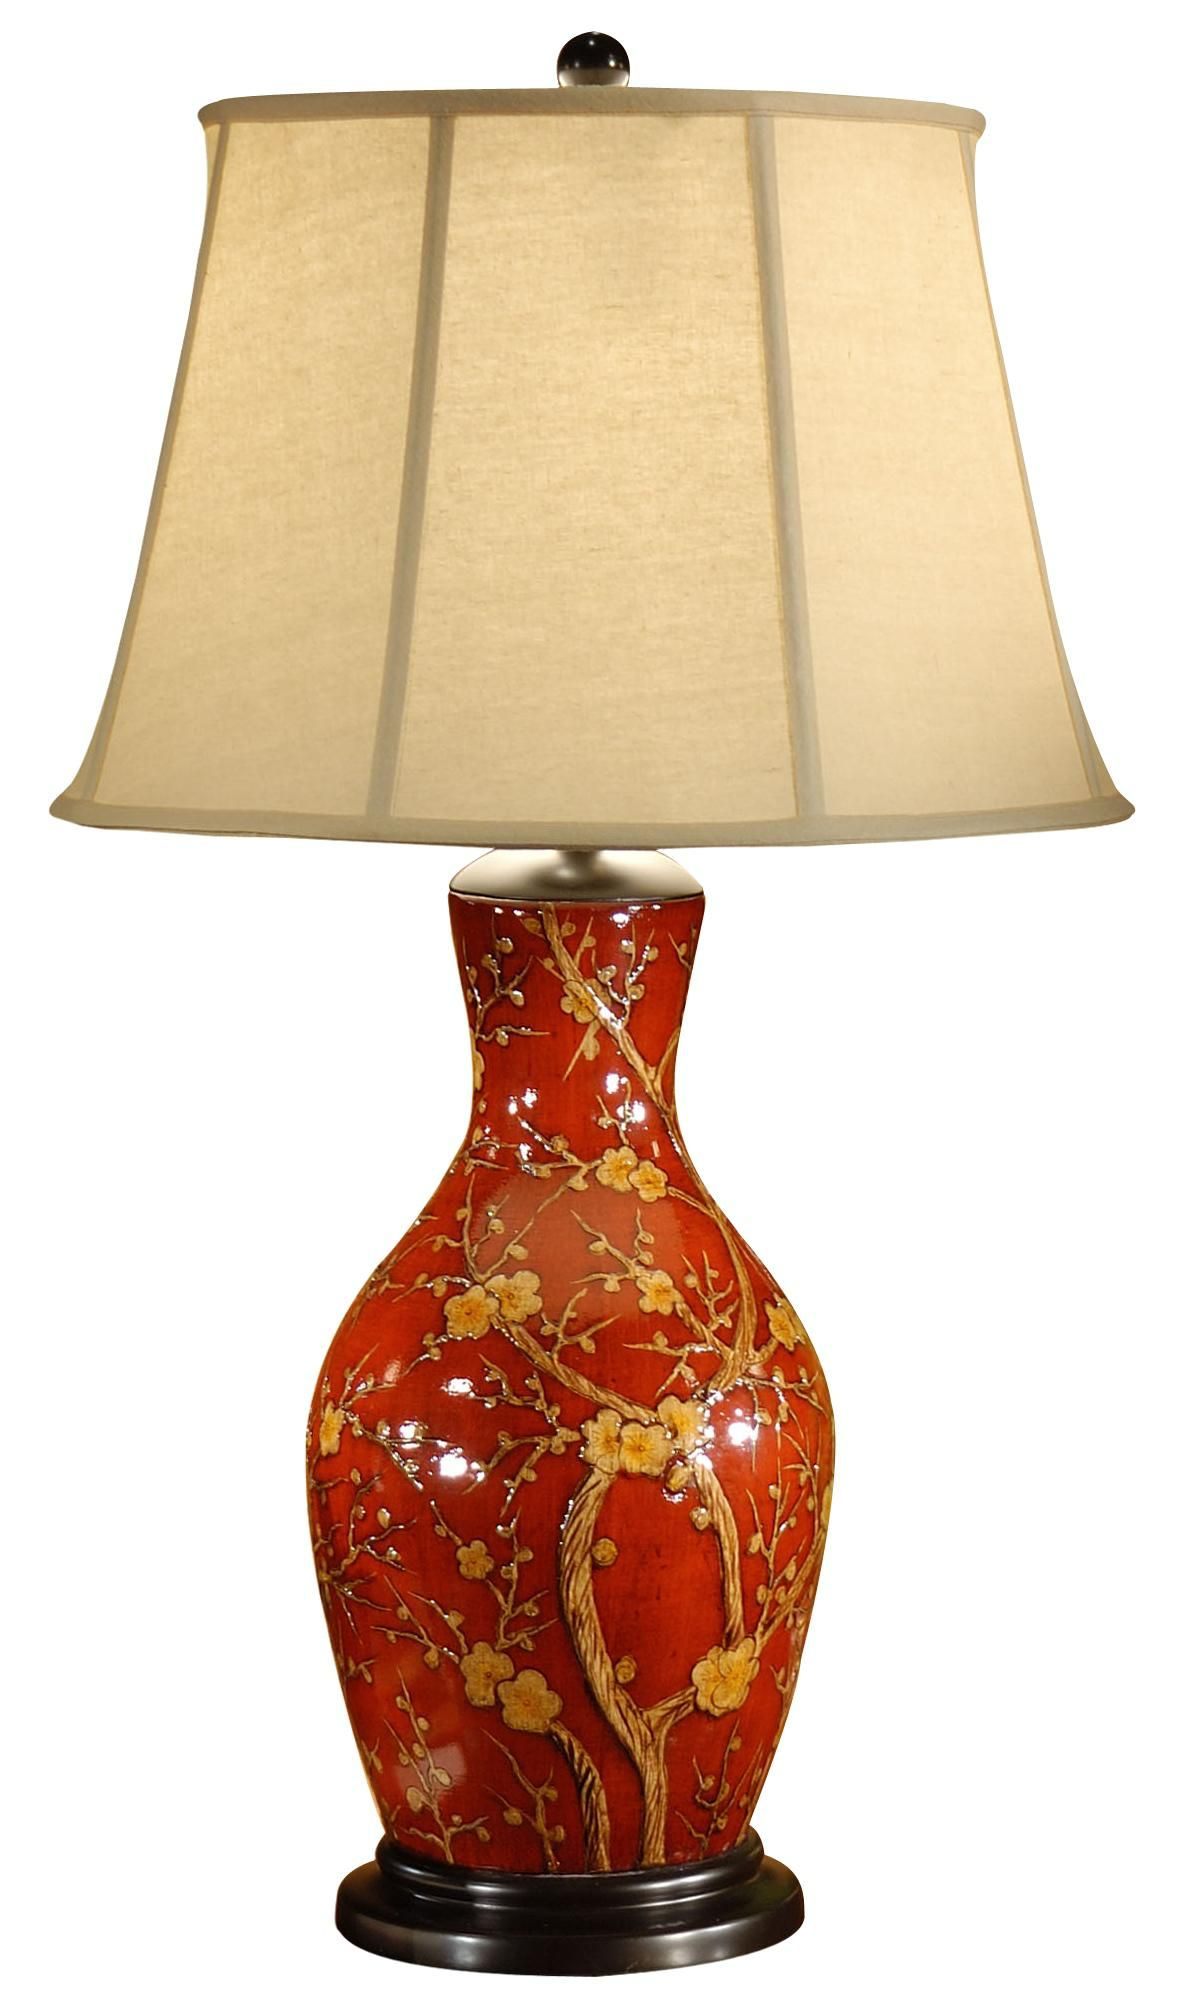 Wildwood Hand Painted Porcelain Red Blossoms Table Lamp